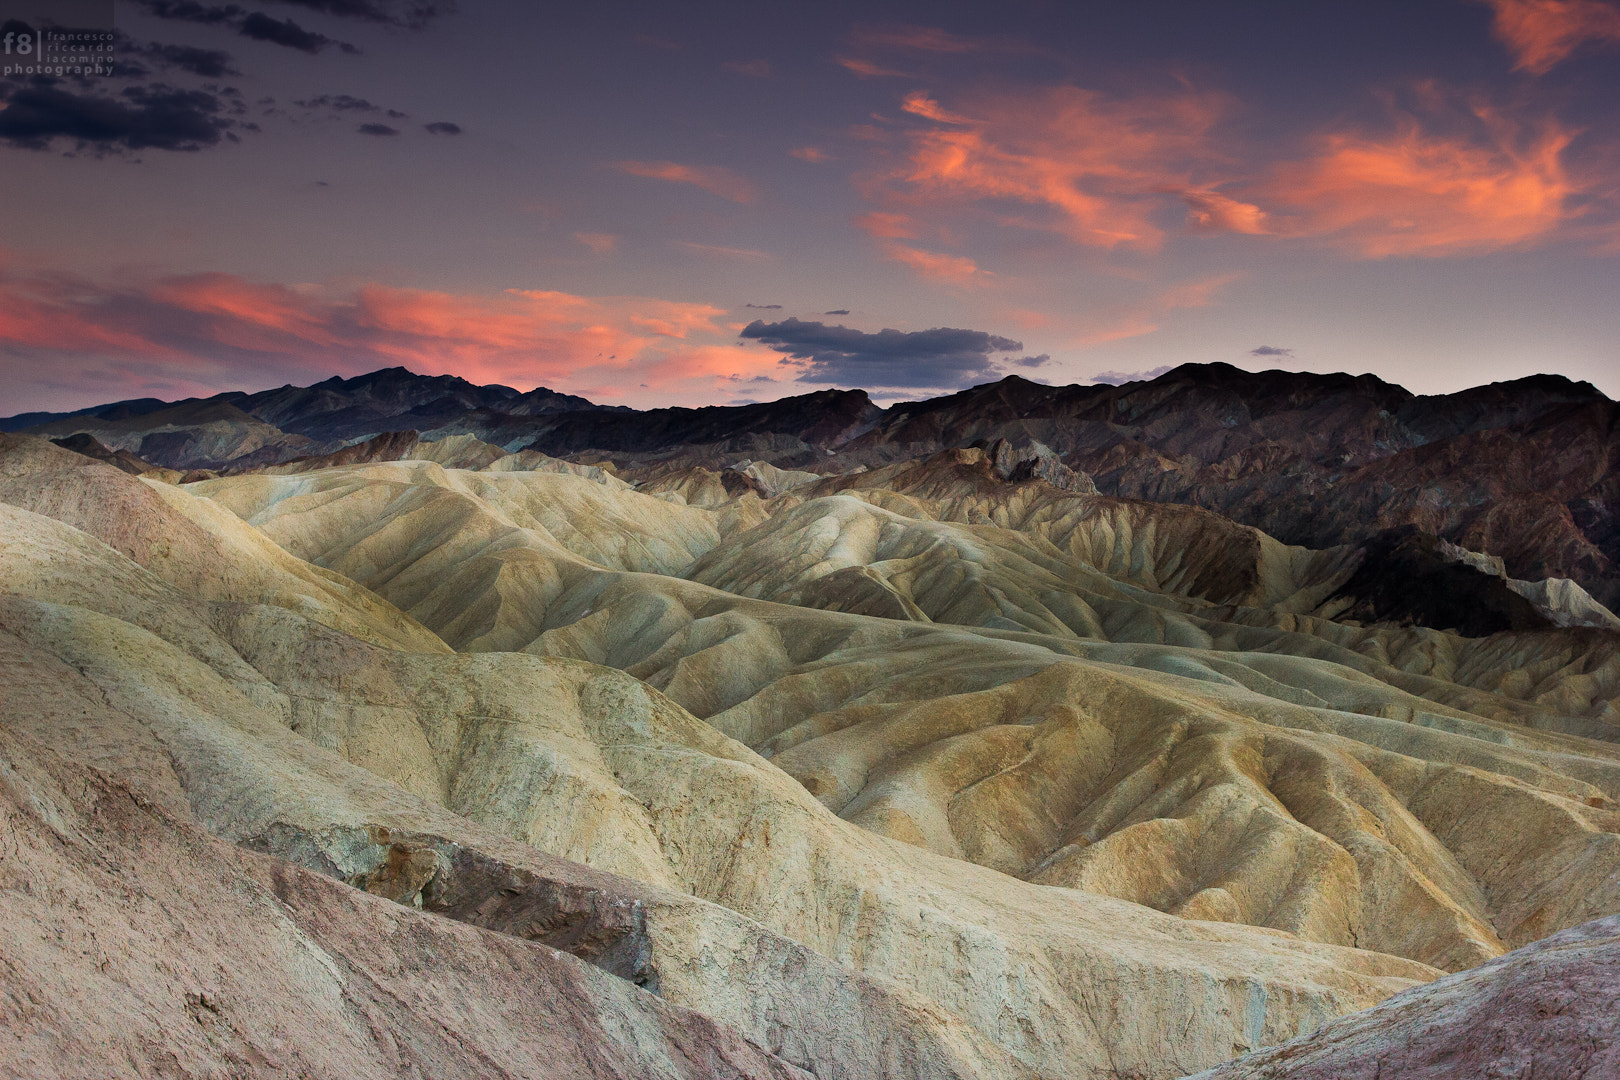 Photograph Zabriskie Point by Francesco Riccardo Iacomino on 500px